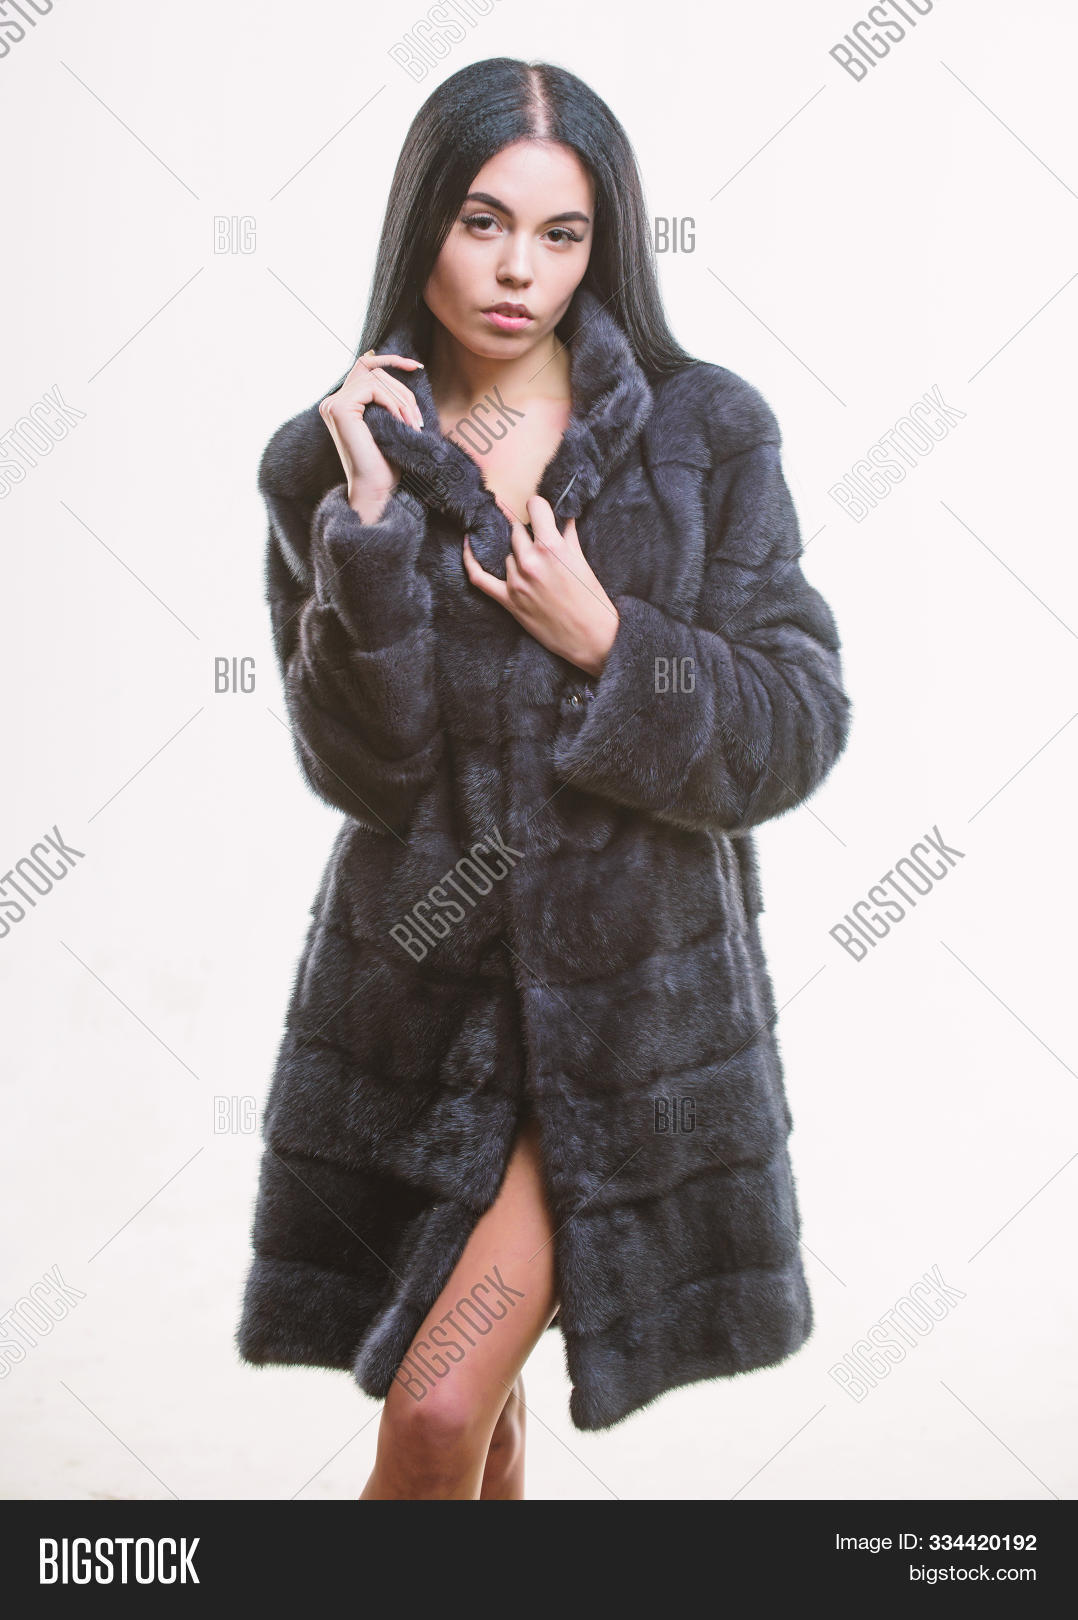 adorable,adult,attractive,background,black,clothes,clothing,coat,concept,dark,design,elegant,expensive,fabric,fashion,fashionable,female,fur,garment,girl,glamorous,glamour,jacket,lady,luxurious,luxury,makeup,mink,model,natural,pretty,rich,sexi,sexy,shop,shopping,soft,stand,store,textile,wear,white,woman